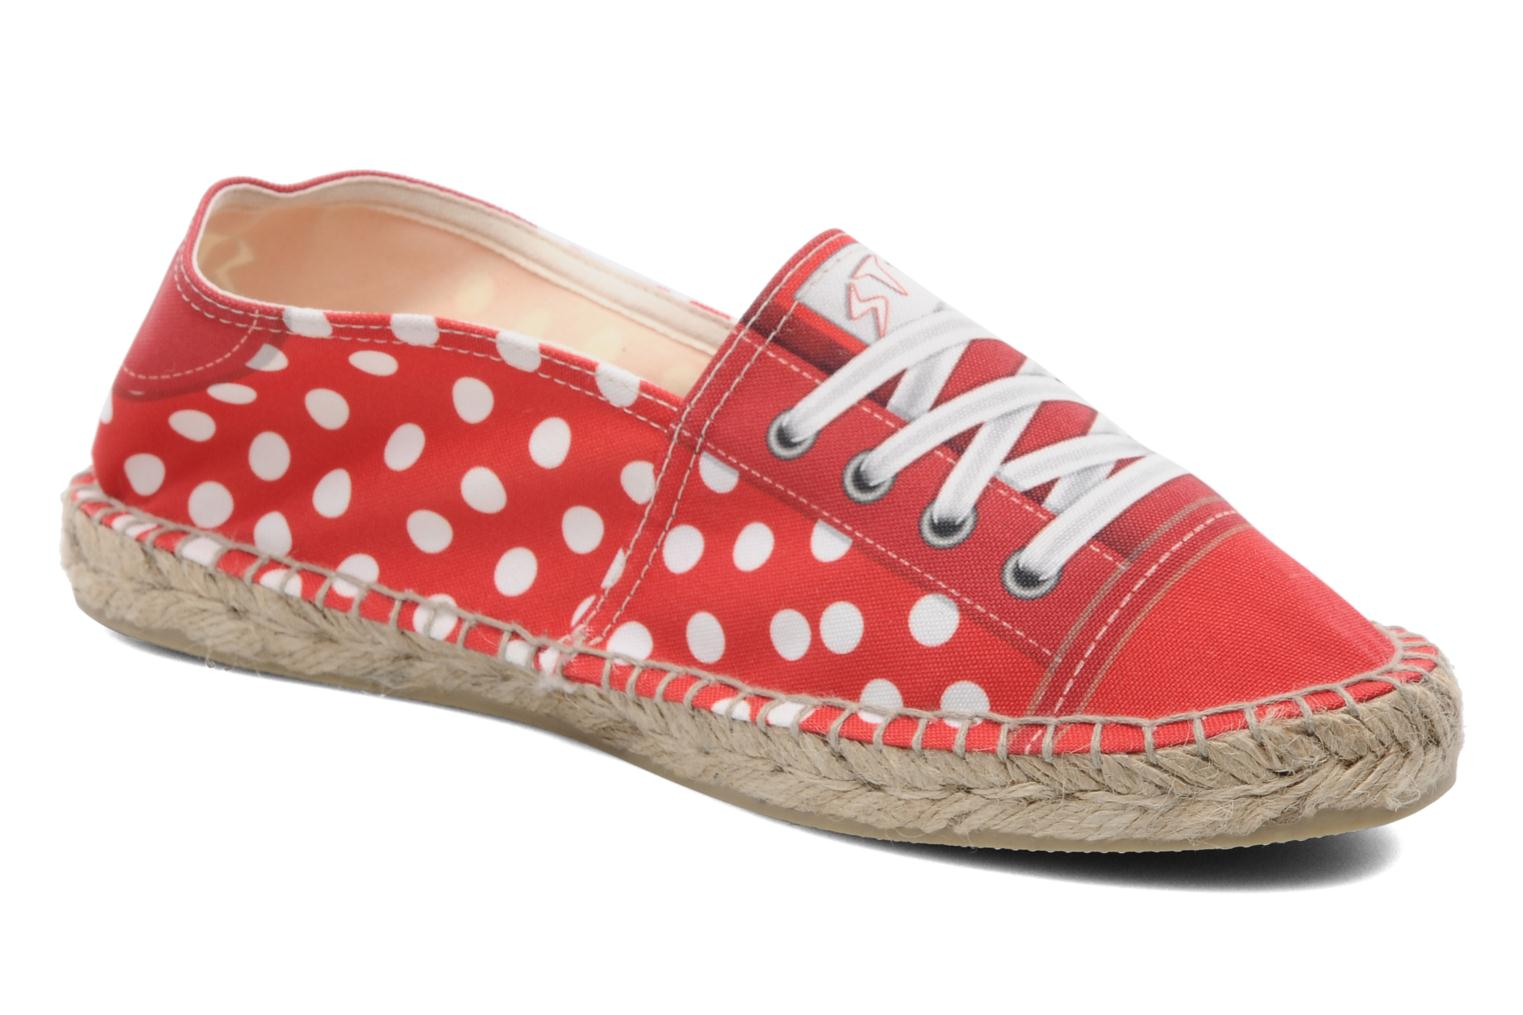 Espadrilles Lisa W by String Republic